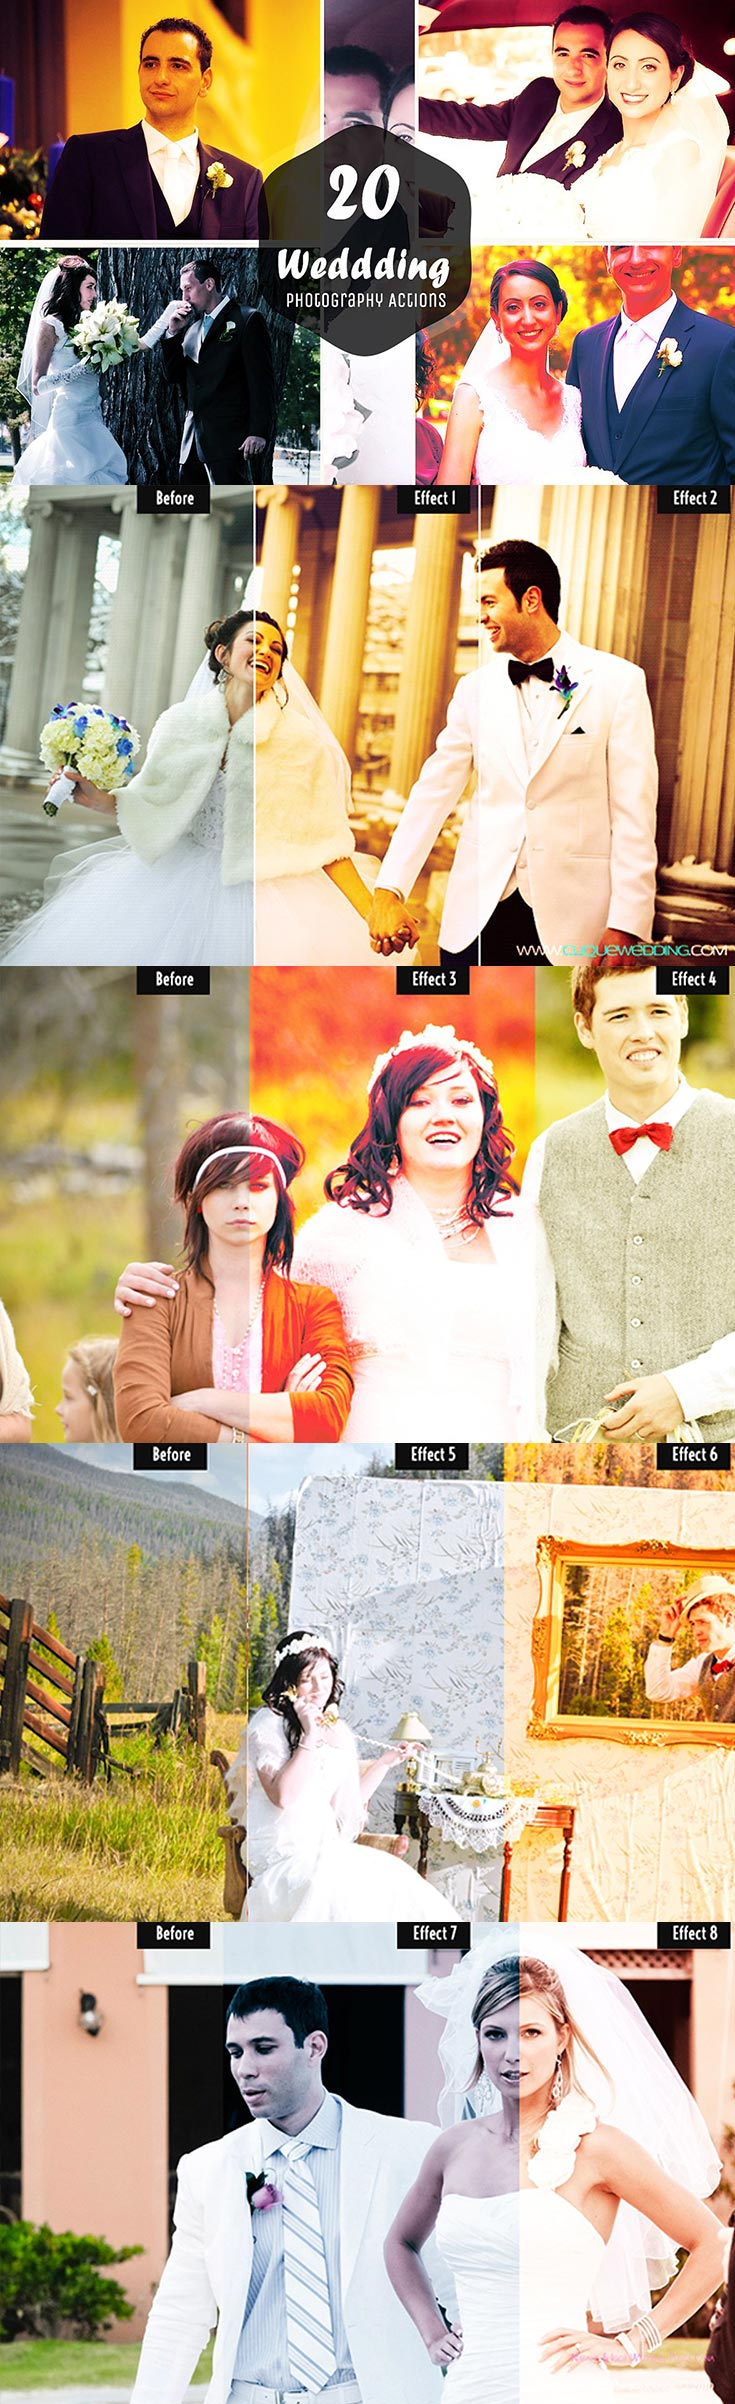 20 Free Wedding Photoshop Actions Ver 2 contains 20 professional, clean, colour-enhancing actions that are specialised for wedding photography.